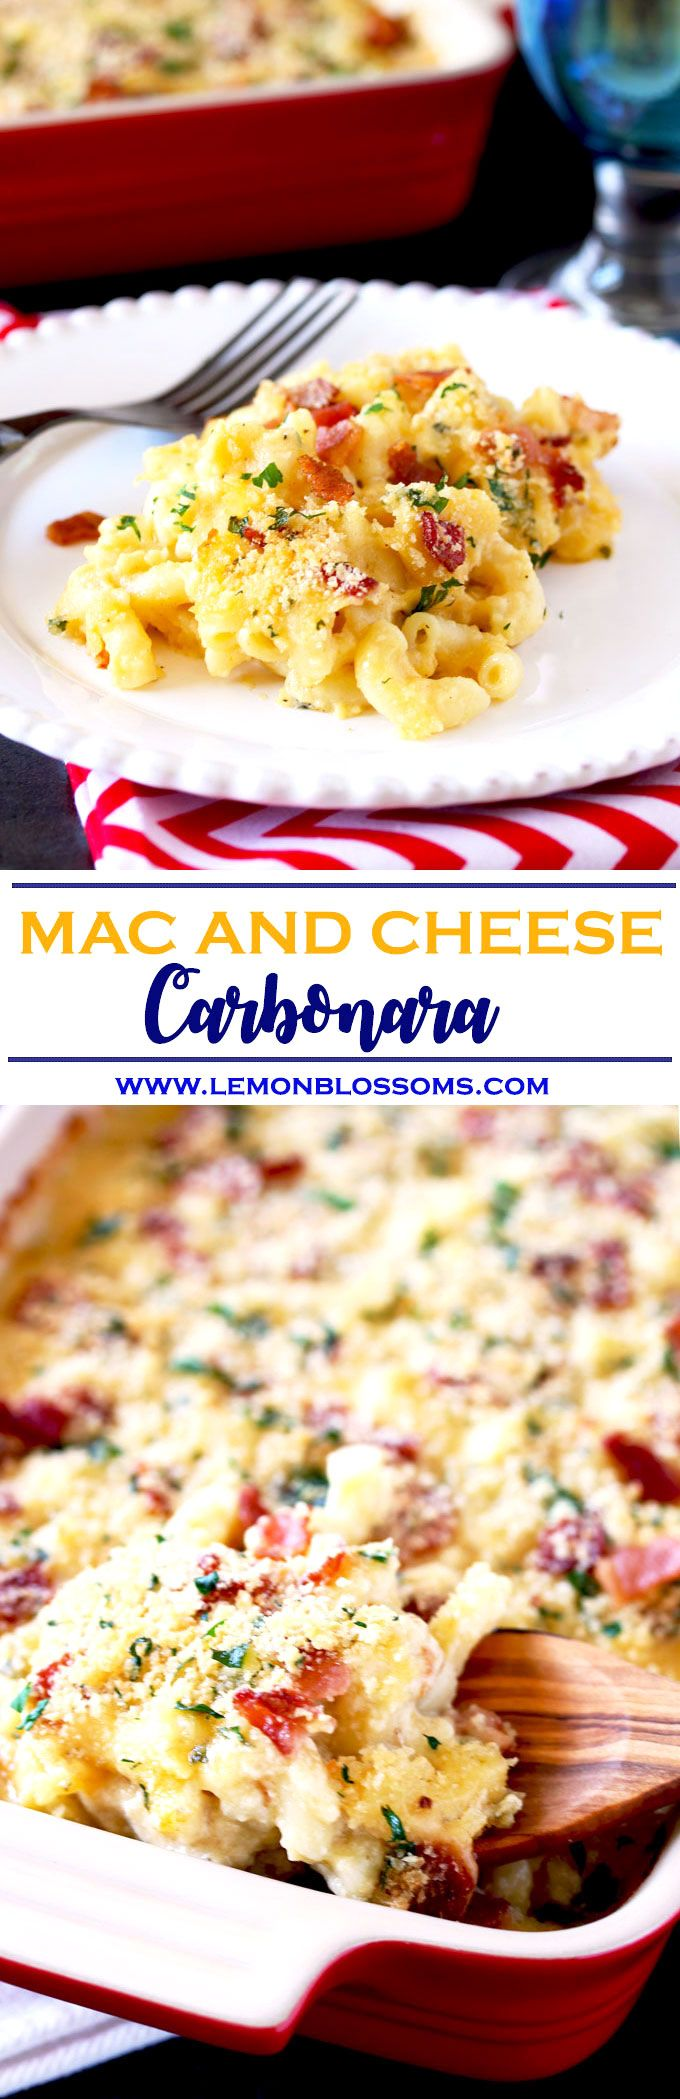 Creamy, cheesy, bacon-y and scrumptious this easy to make Mac and Cheese Carbonara is an exciting alternative to the delicious classic Mac and Cheese we all love! via @https://www.pinterest.com/lmnblossoms/